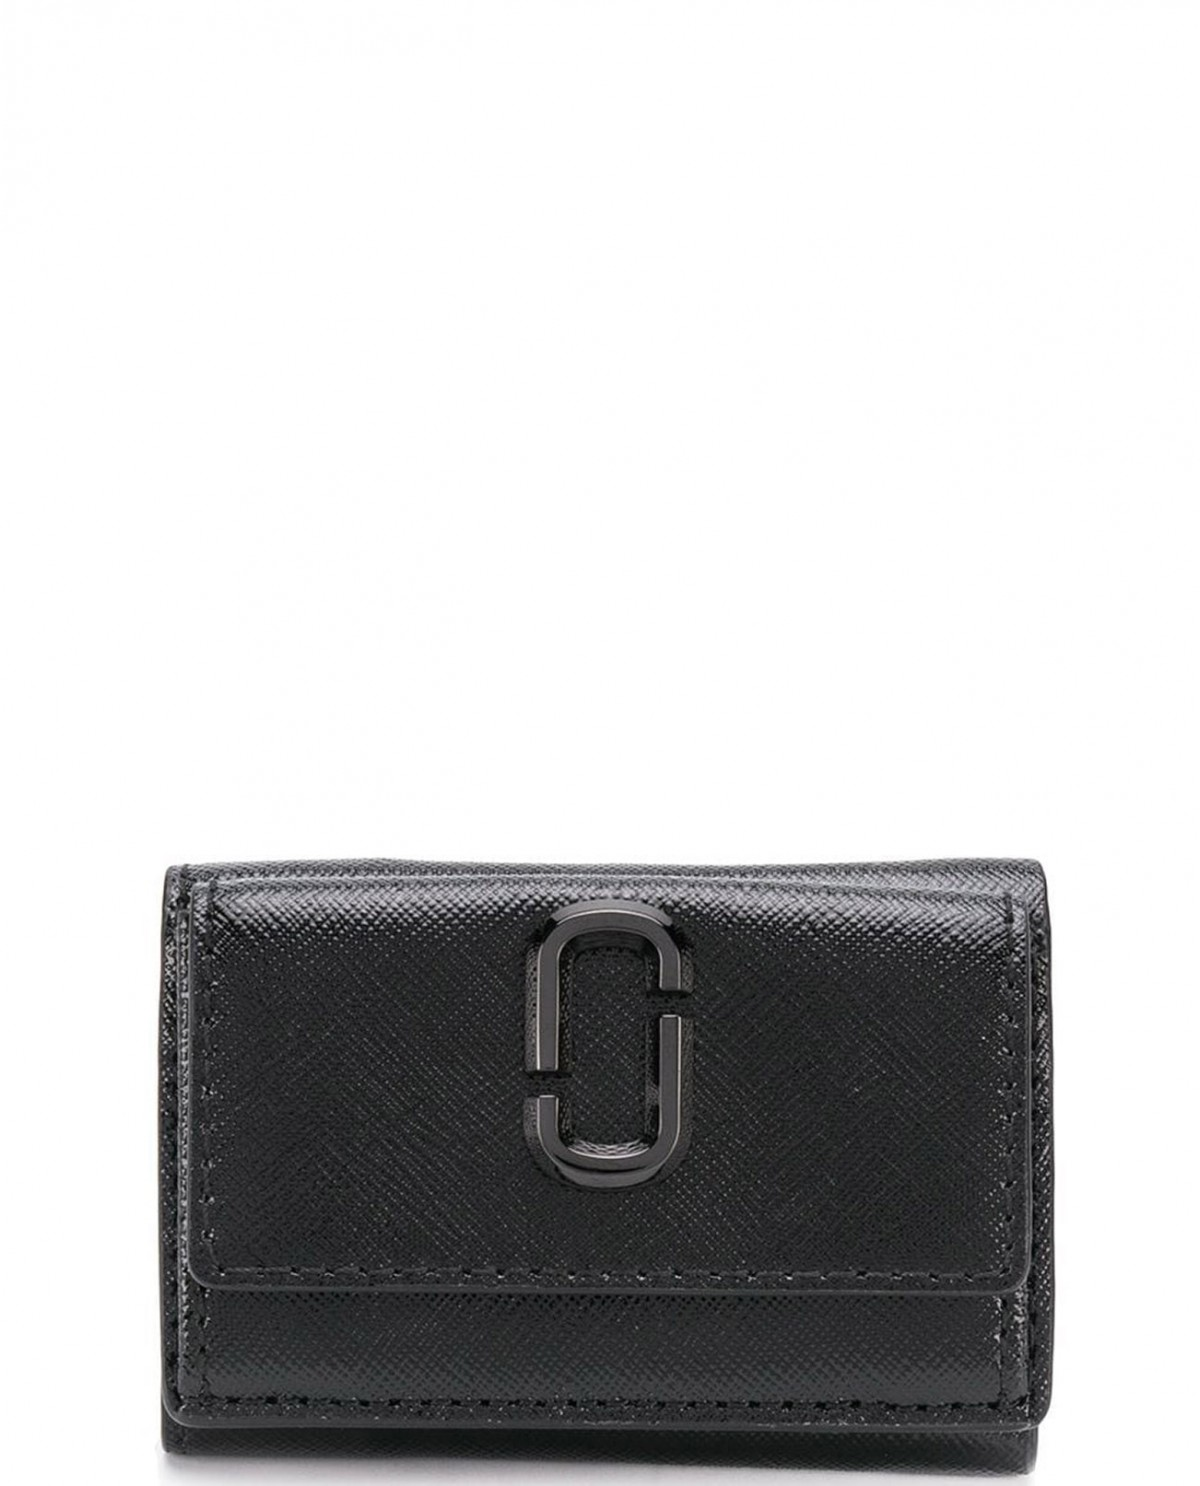 The Marc Jacobs black Snapshot DTM...